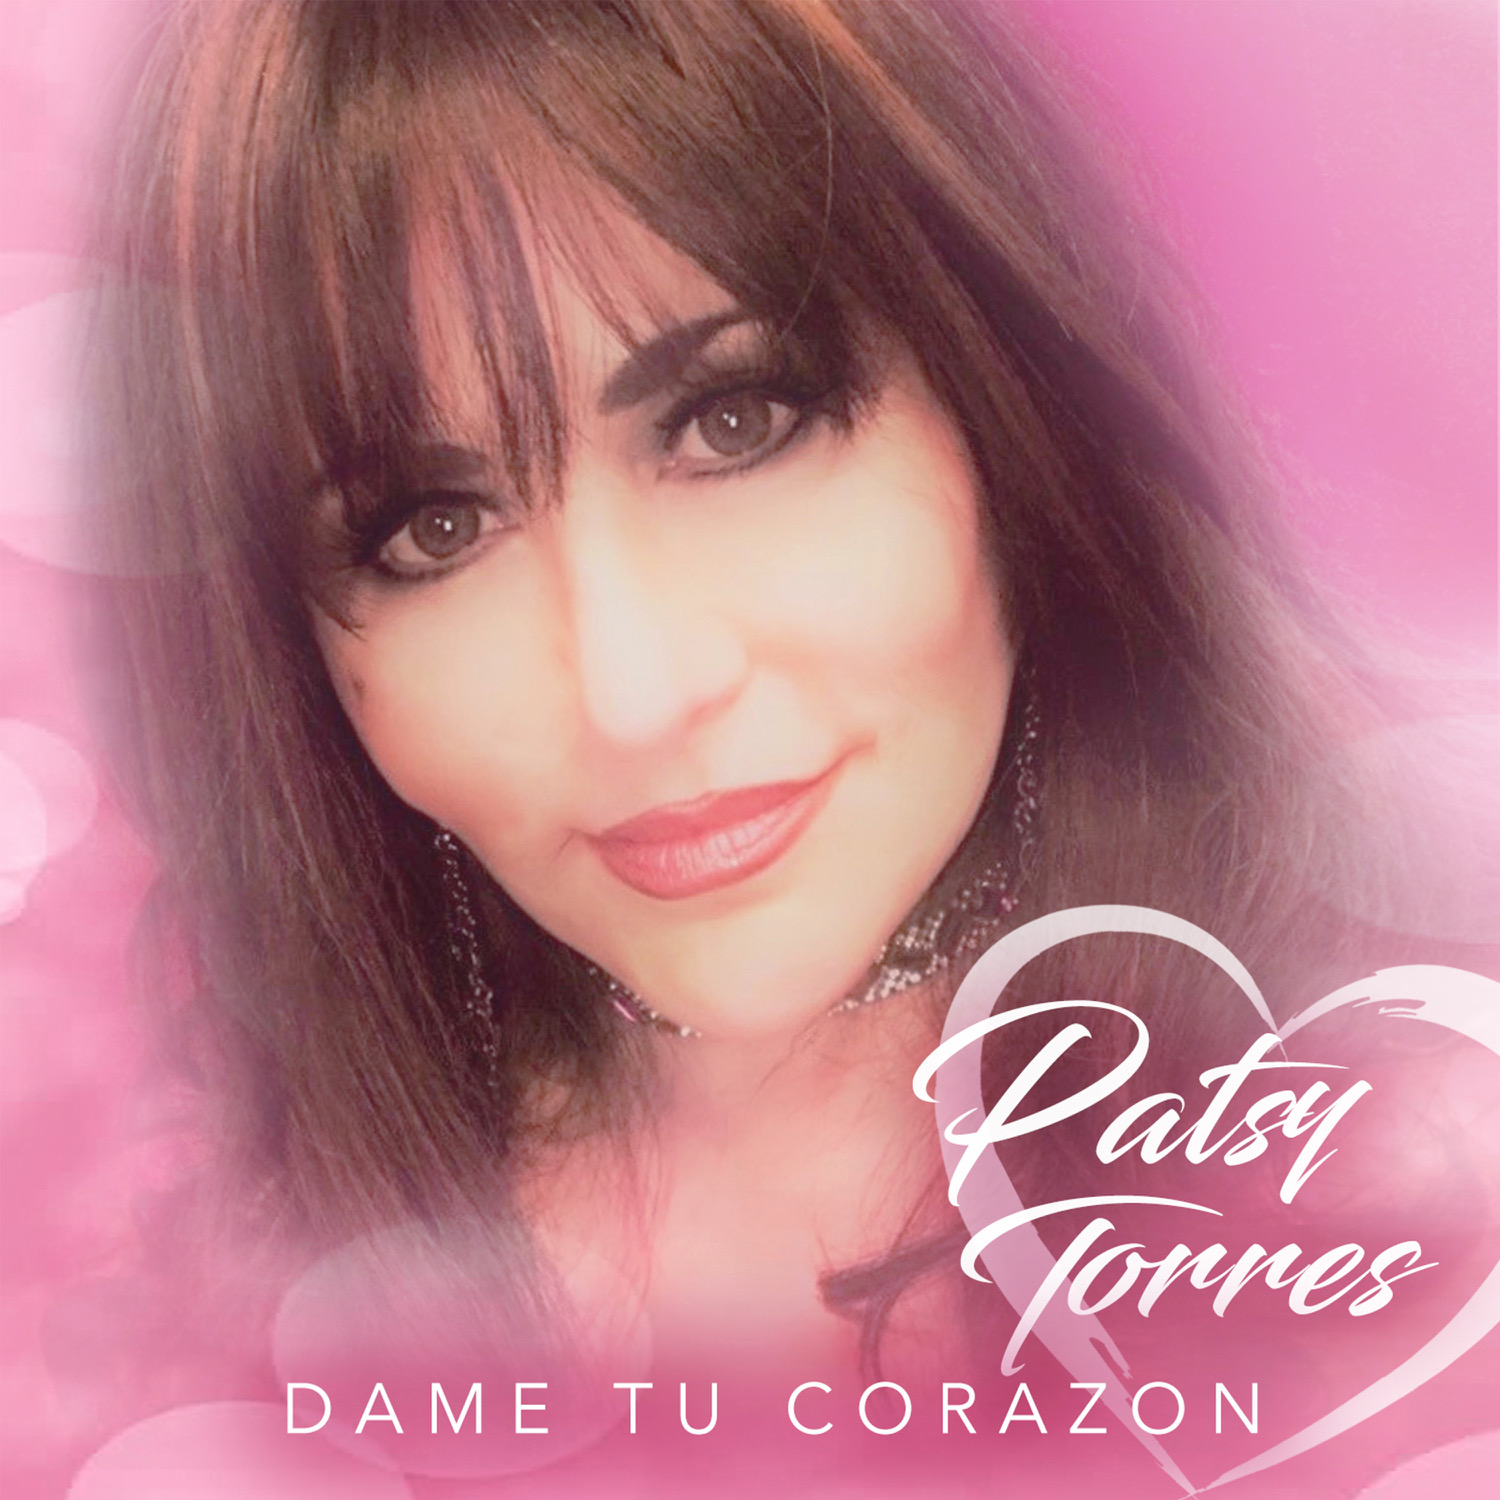 Patsy Torres